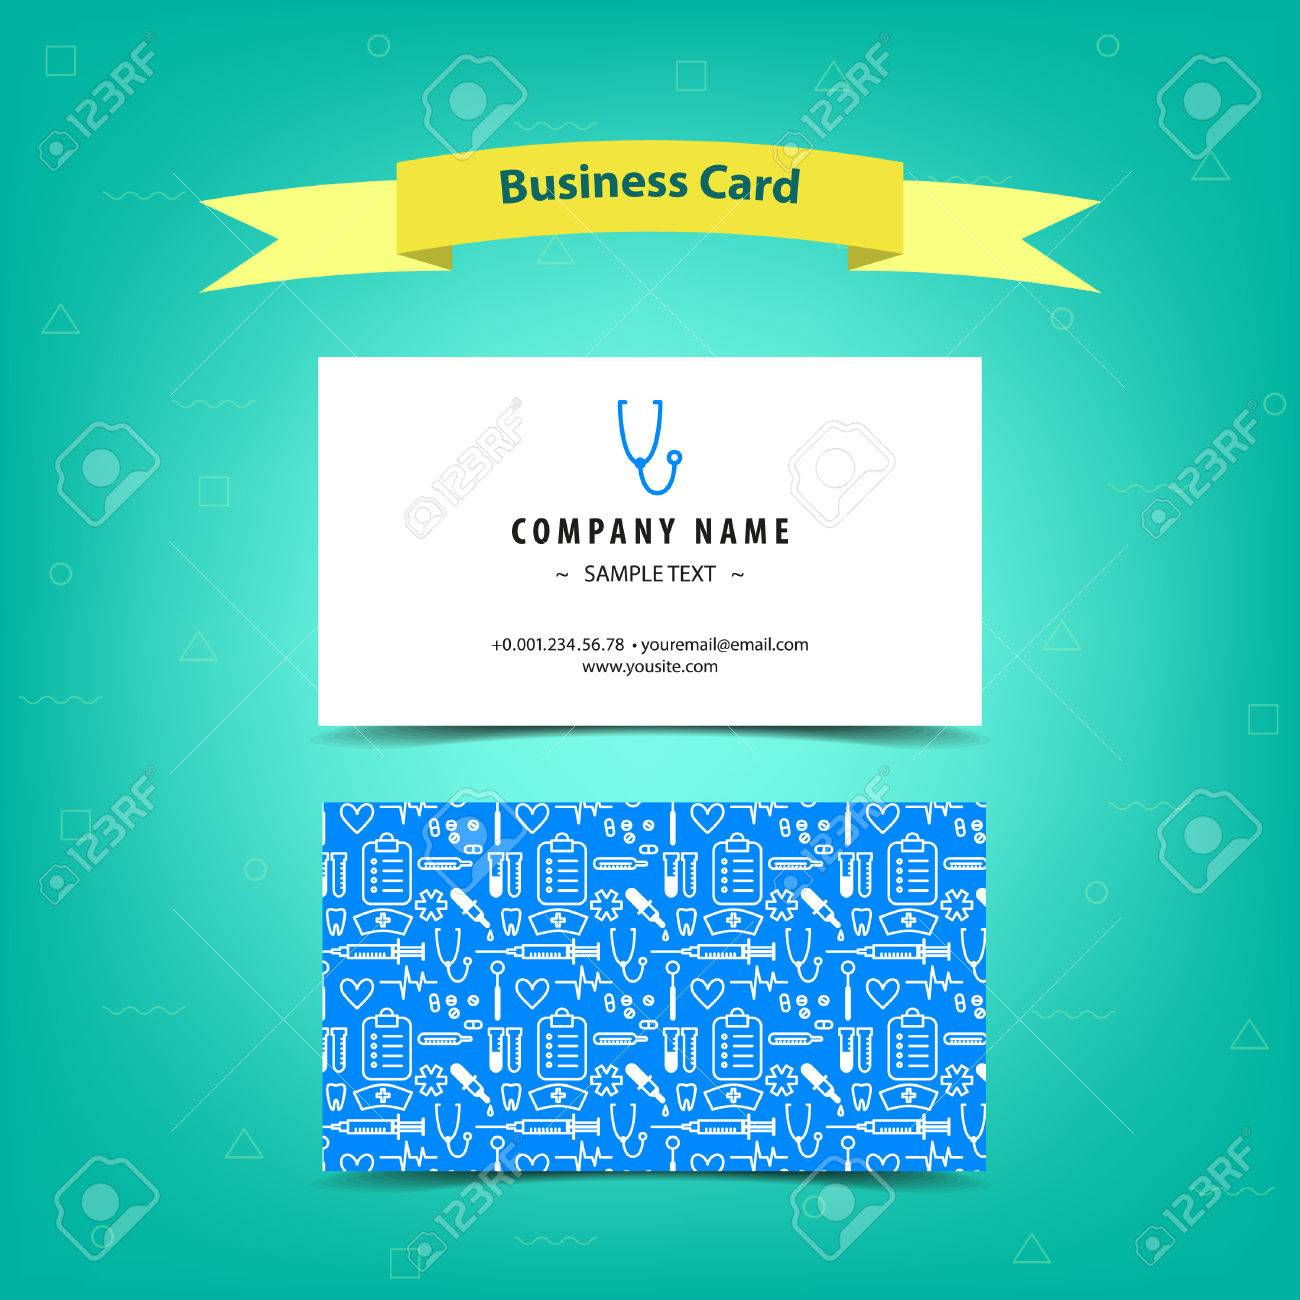 Medical Business Card For Doctors And Nurses, Template Design ...